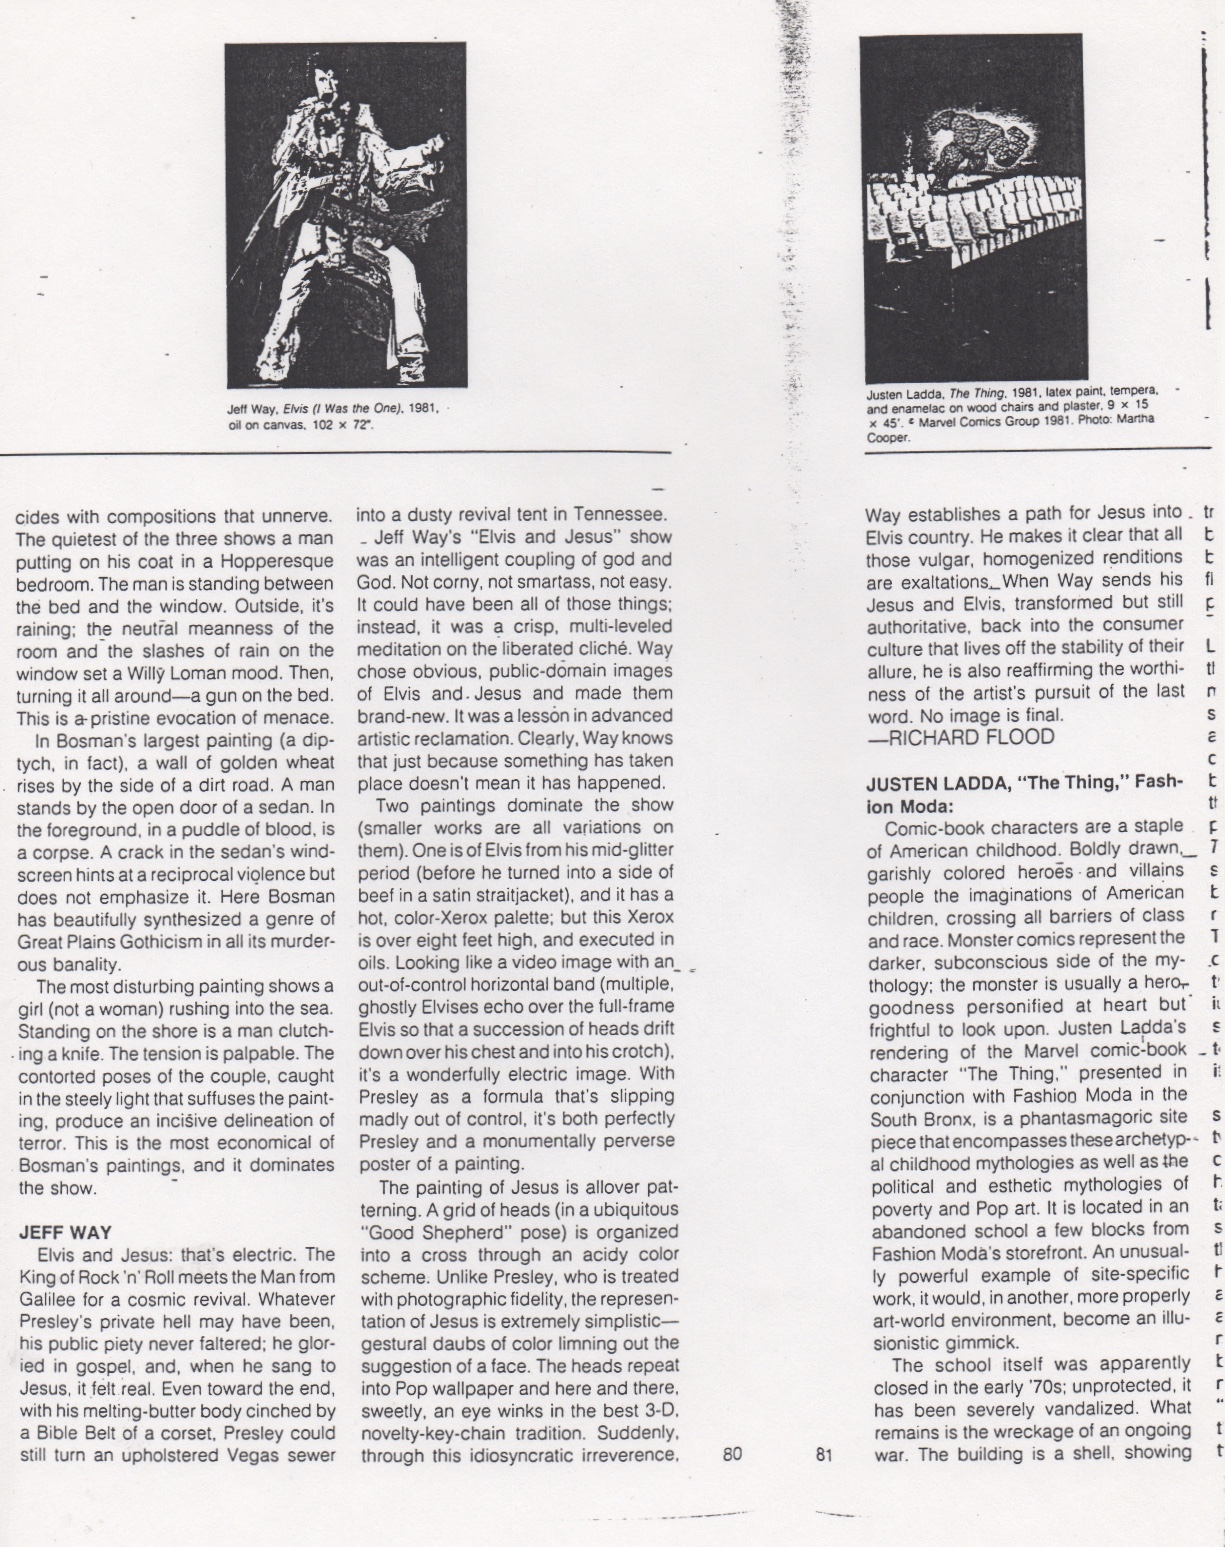 Flood Richard, Artforum, January 1982